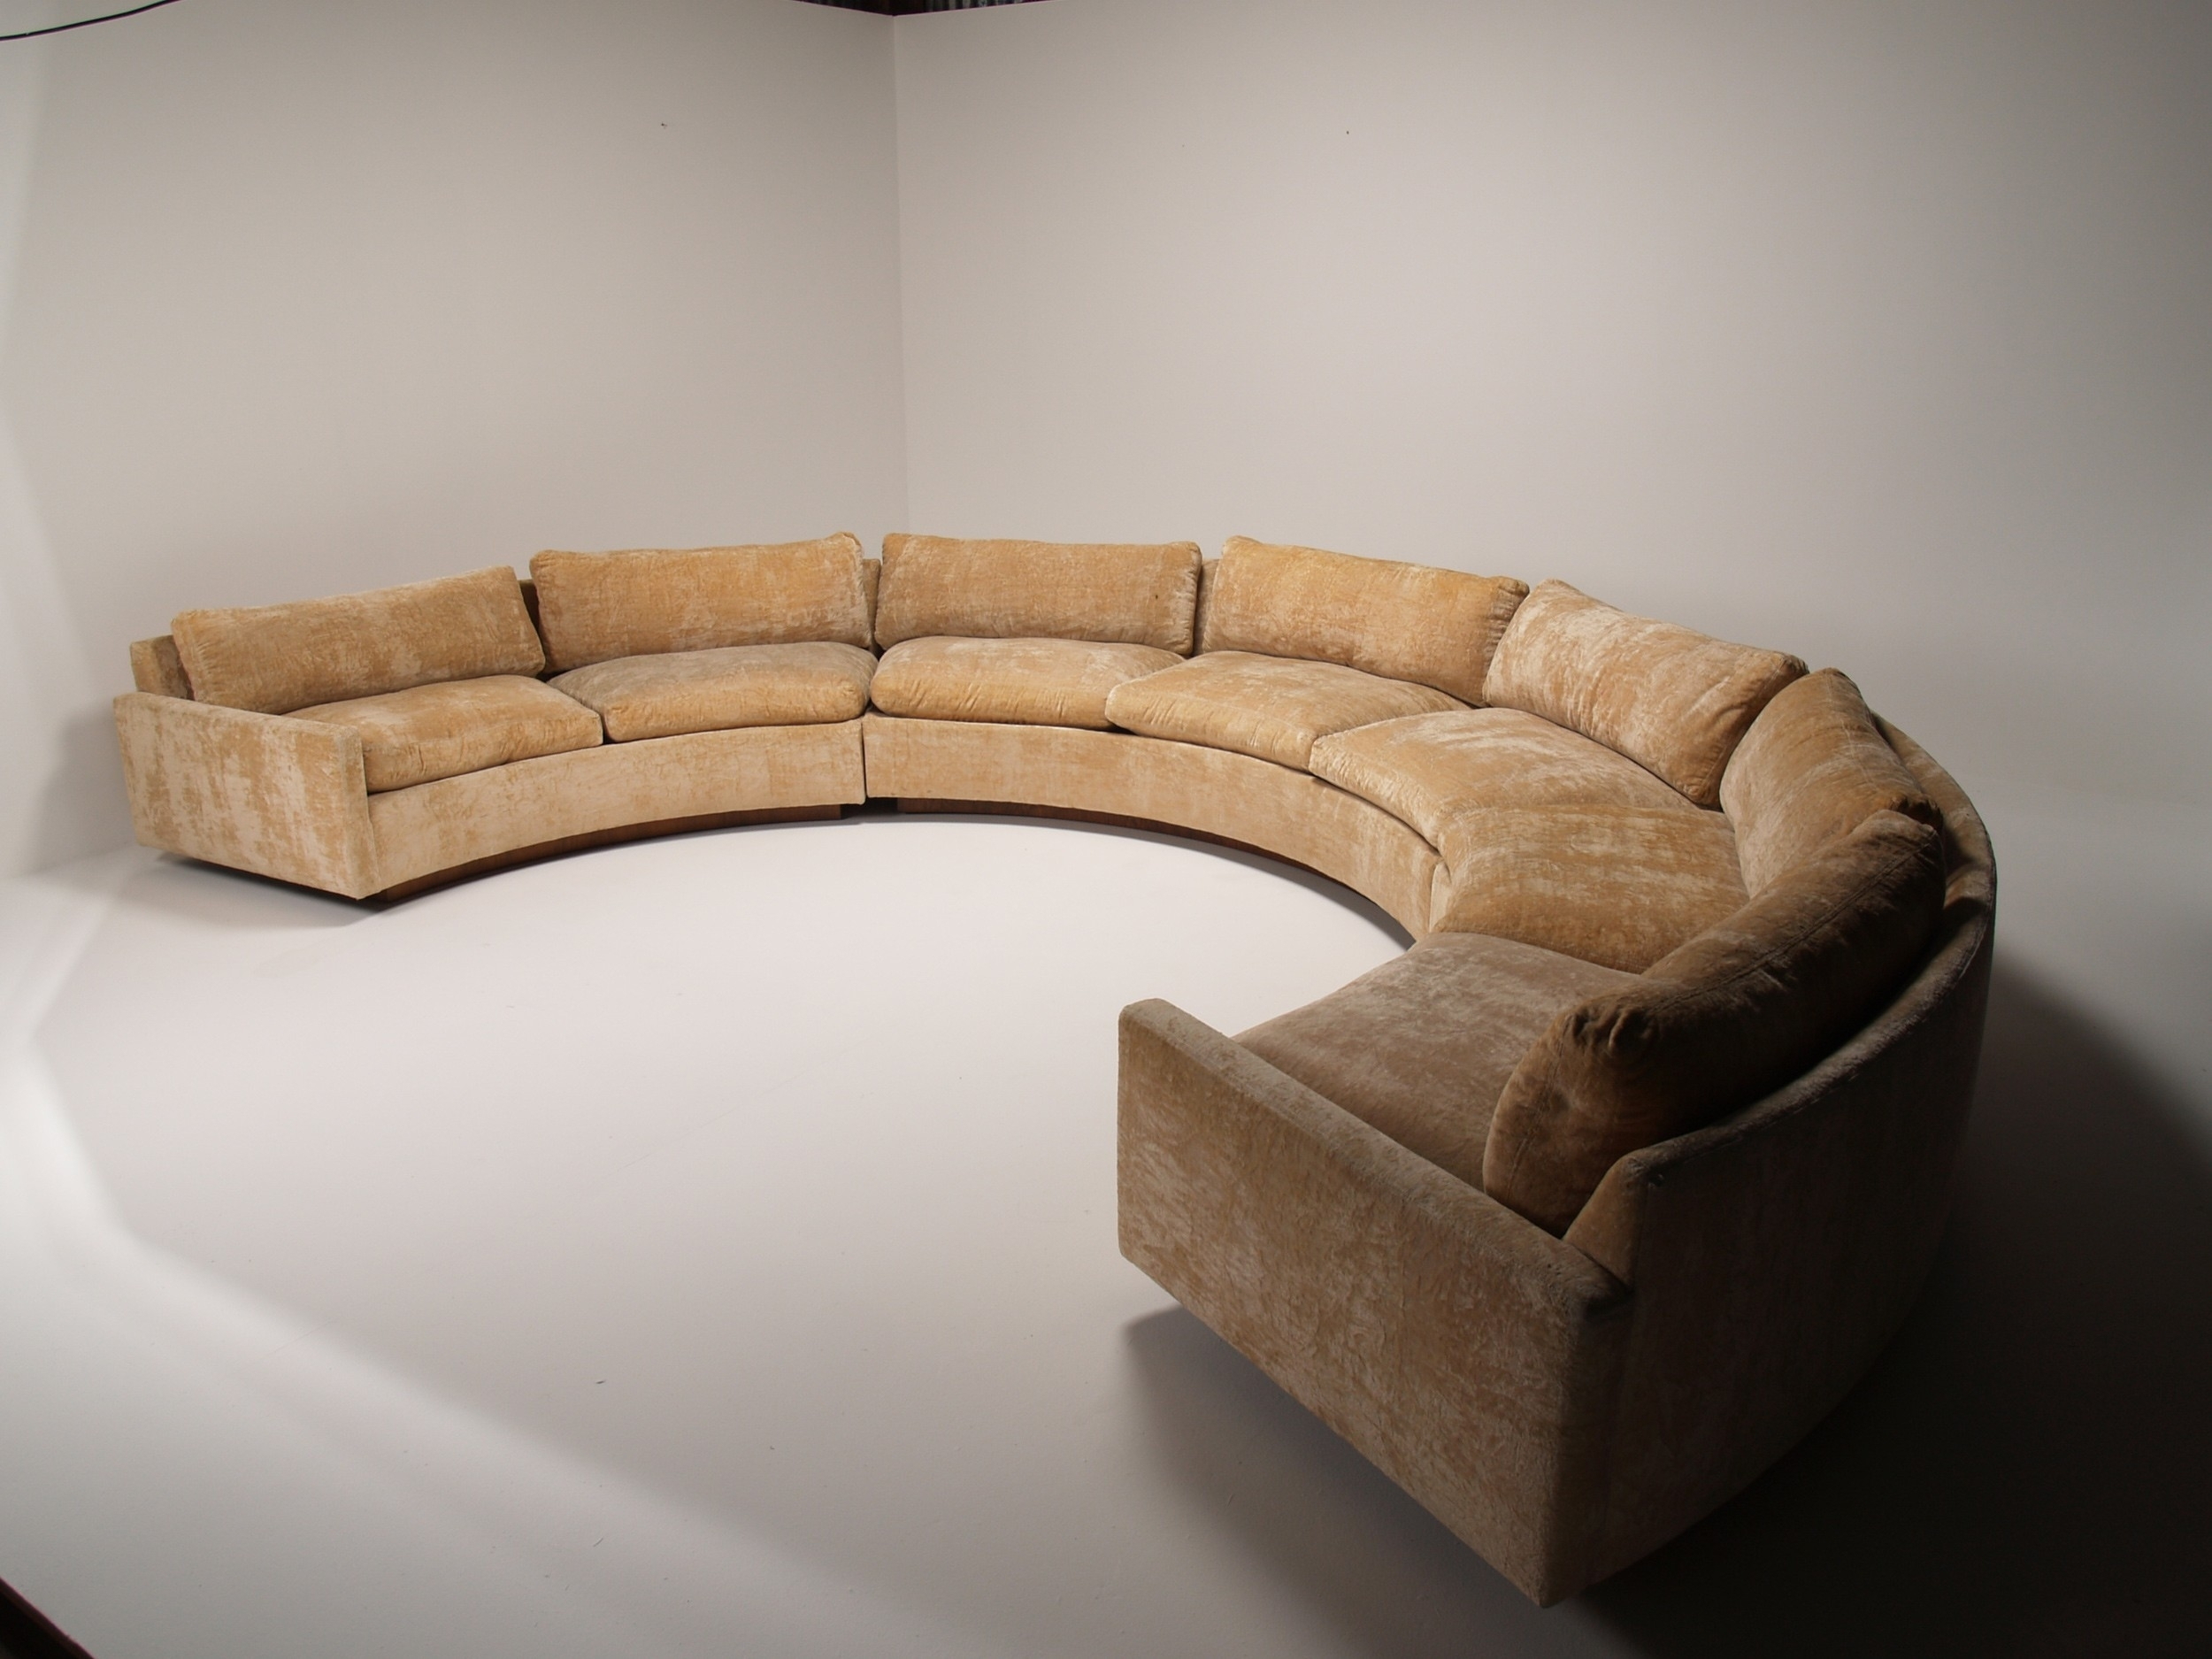 Fascinating Semi Circular Sofas Sectionals 55 On Convertible within Semicircular Sofas (Image 3 of 10)